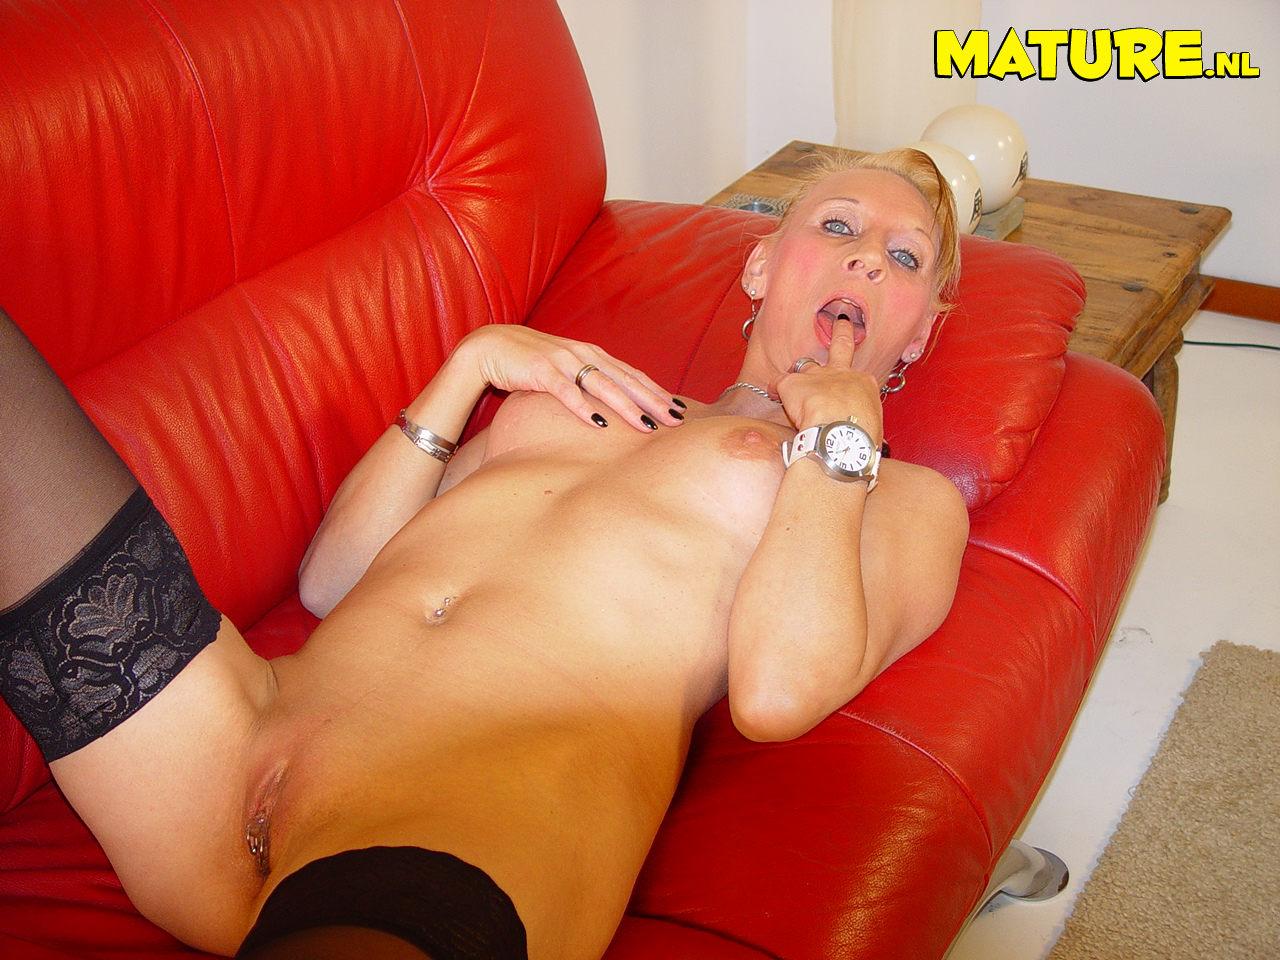 This naughty blondie mature tramp likes toying with herself